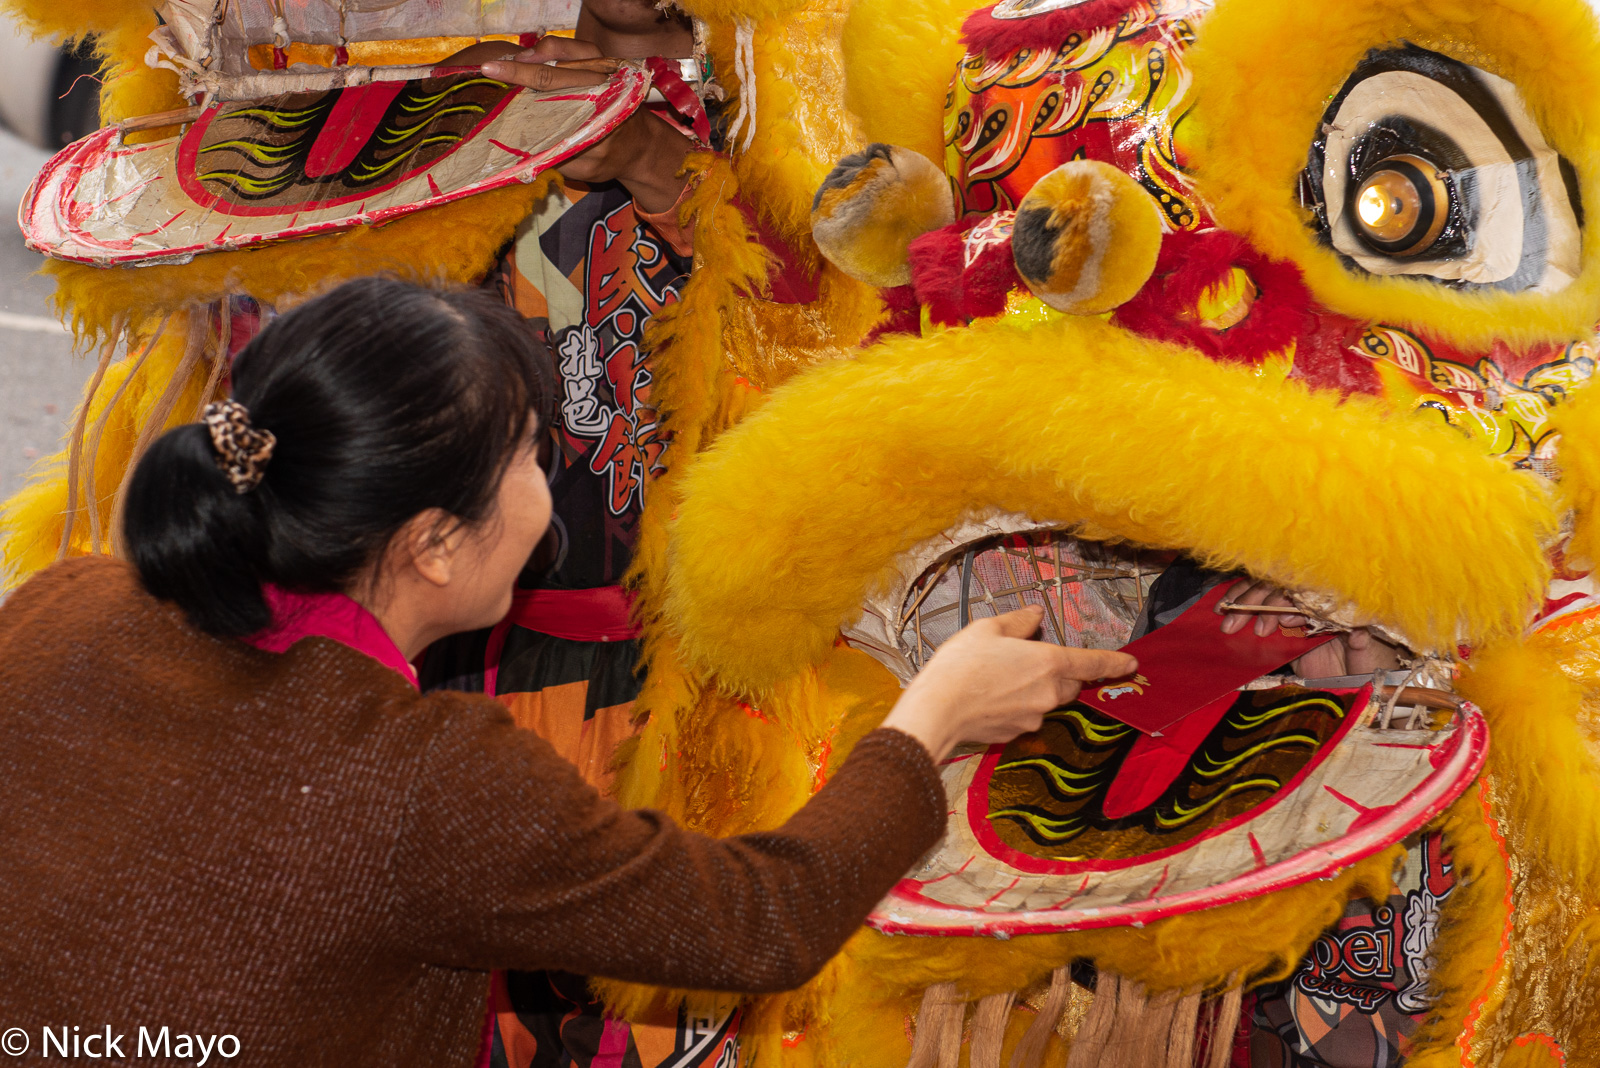 An offering of a red envelope with money inside being handed to a lion dancer through the mouth of his costume in an event organized...